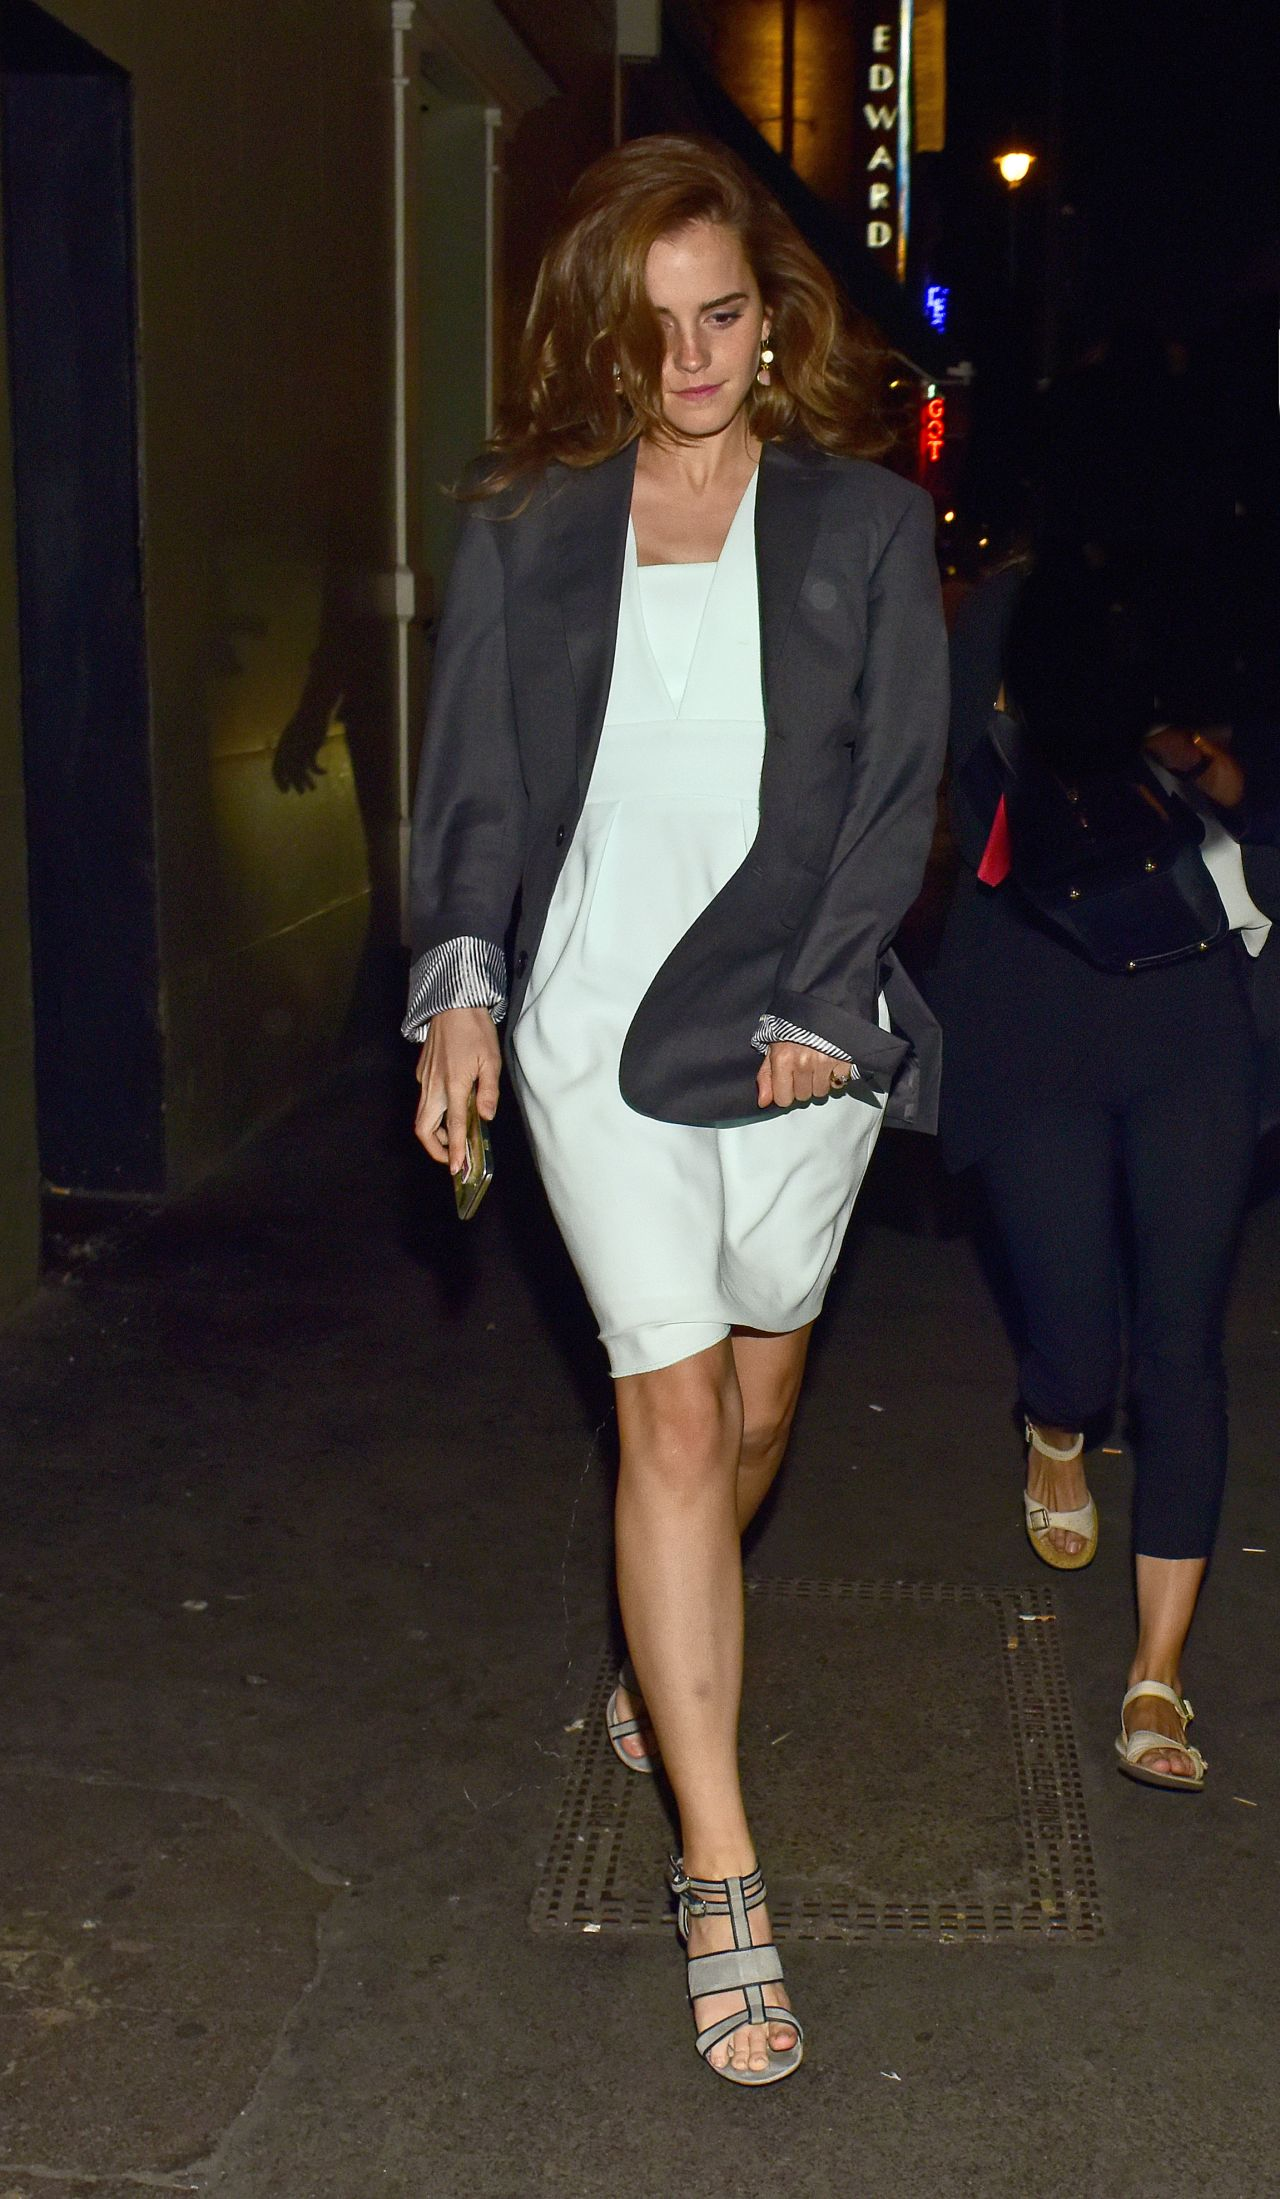 emma-watson-night-out-style-london-july-